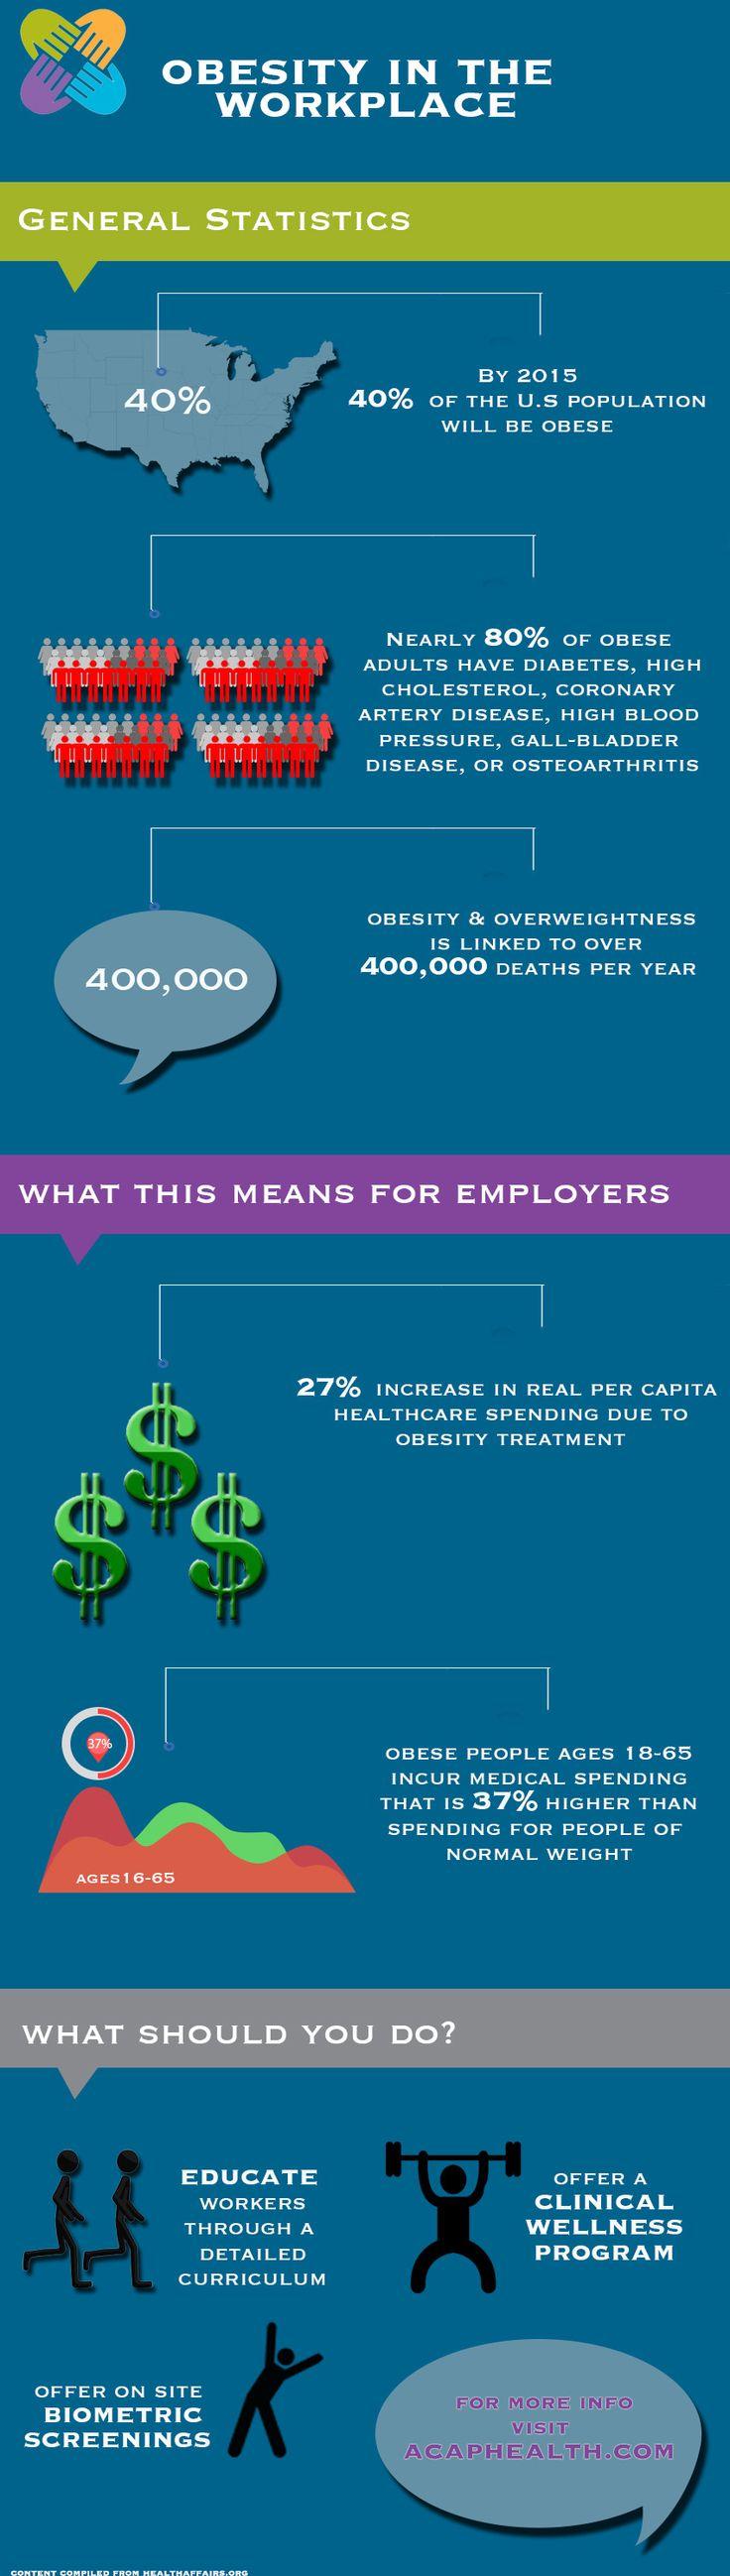 Obesity in the Workplace [Infographic] For more